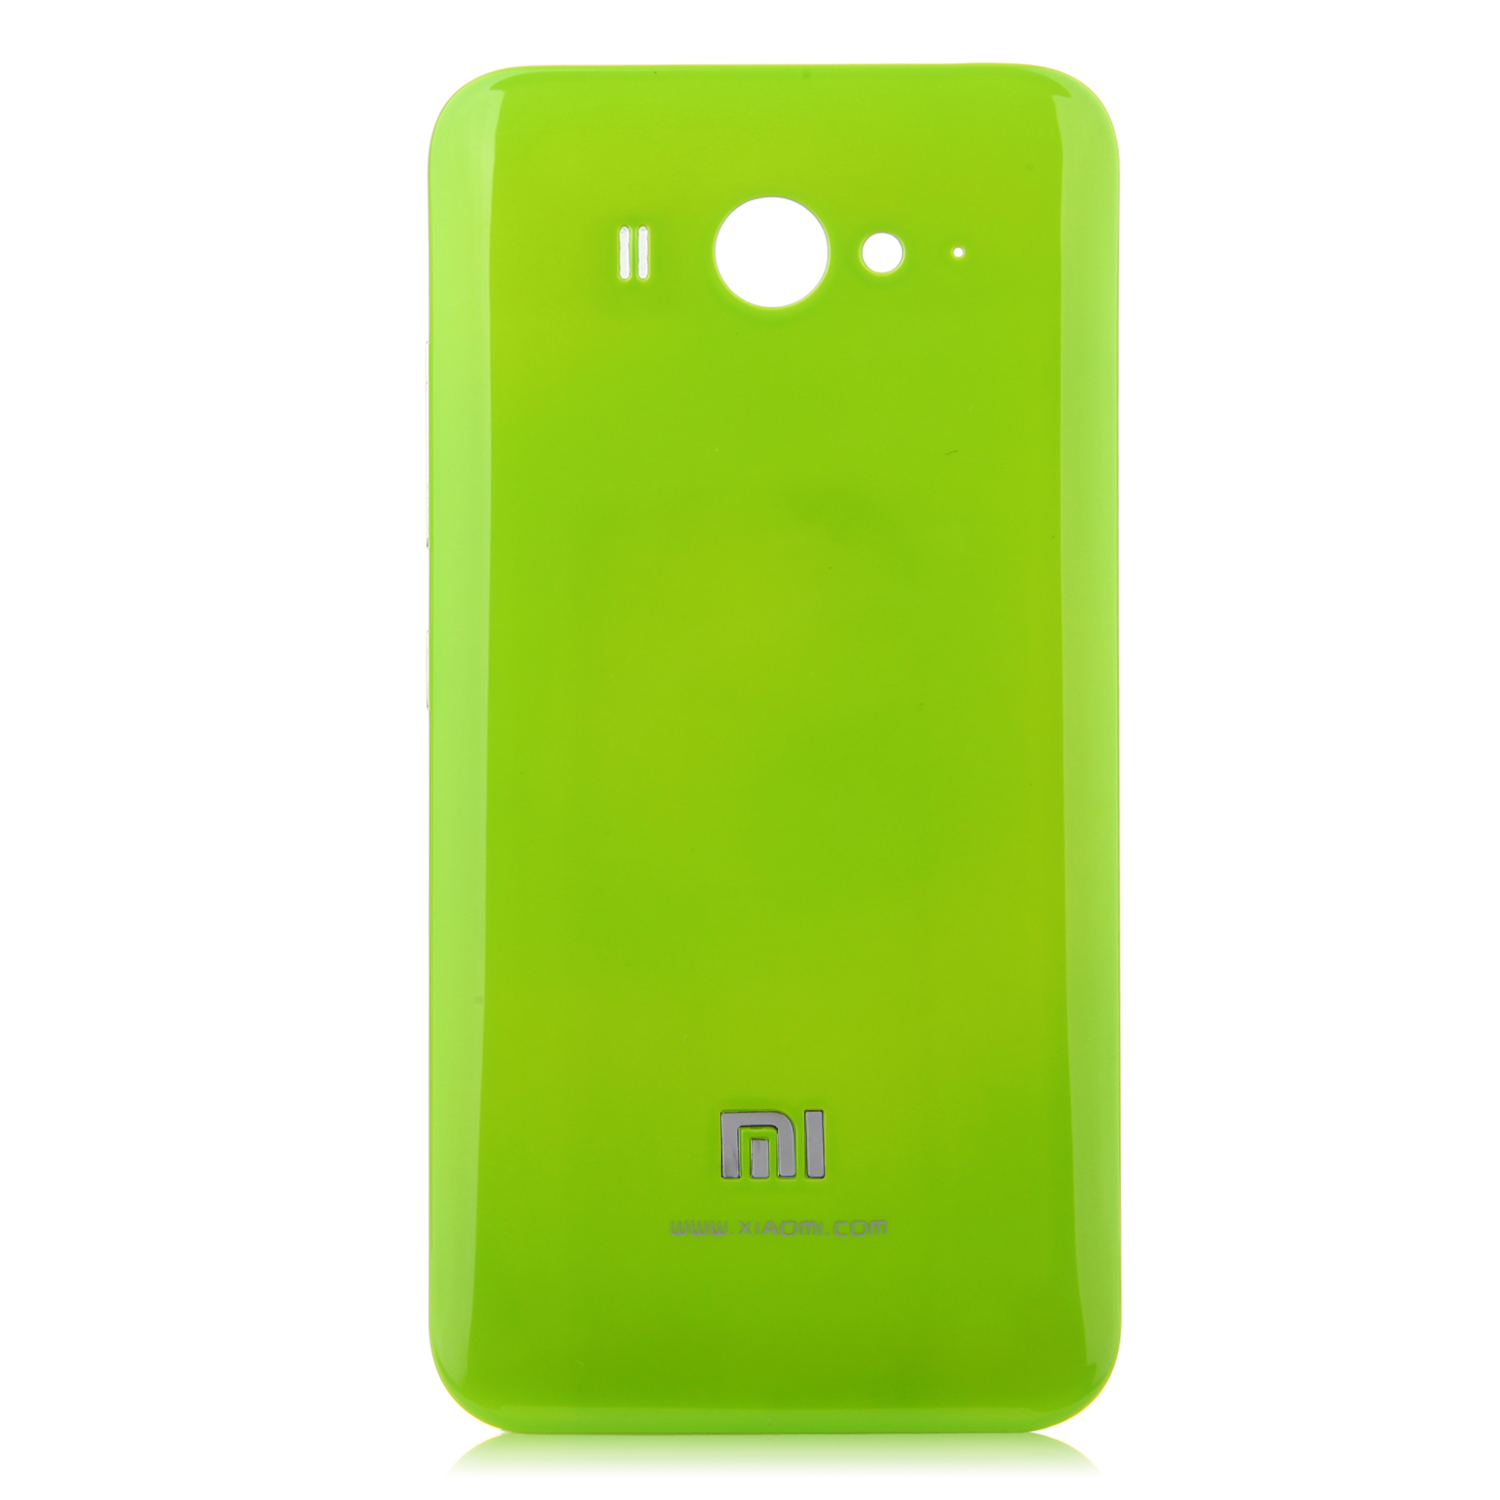 Replacement Battery Cover Back Case for XIAOMI 2S Smartphone Green